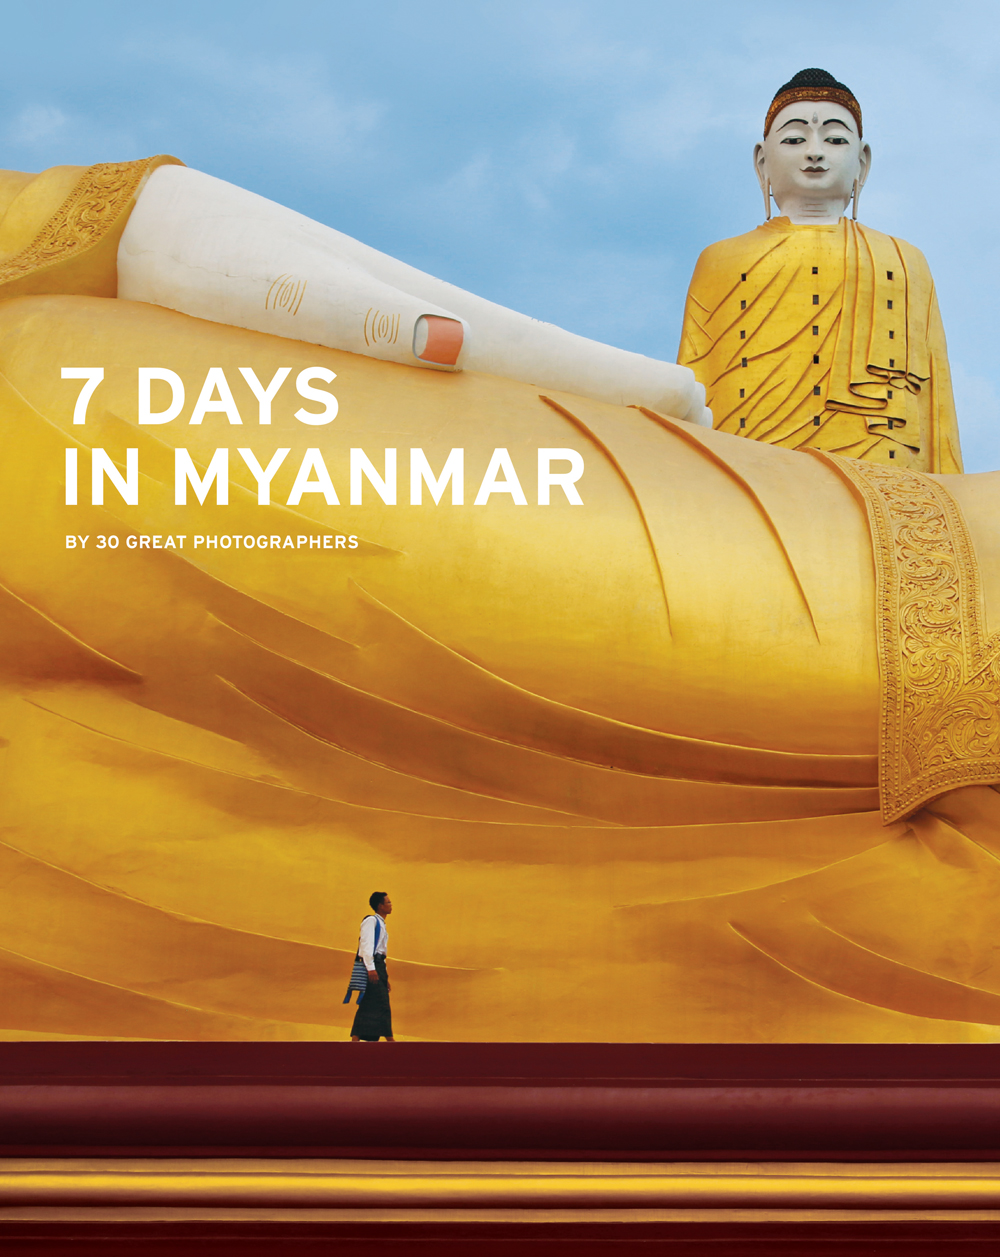 7 Days in Myanmar